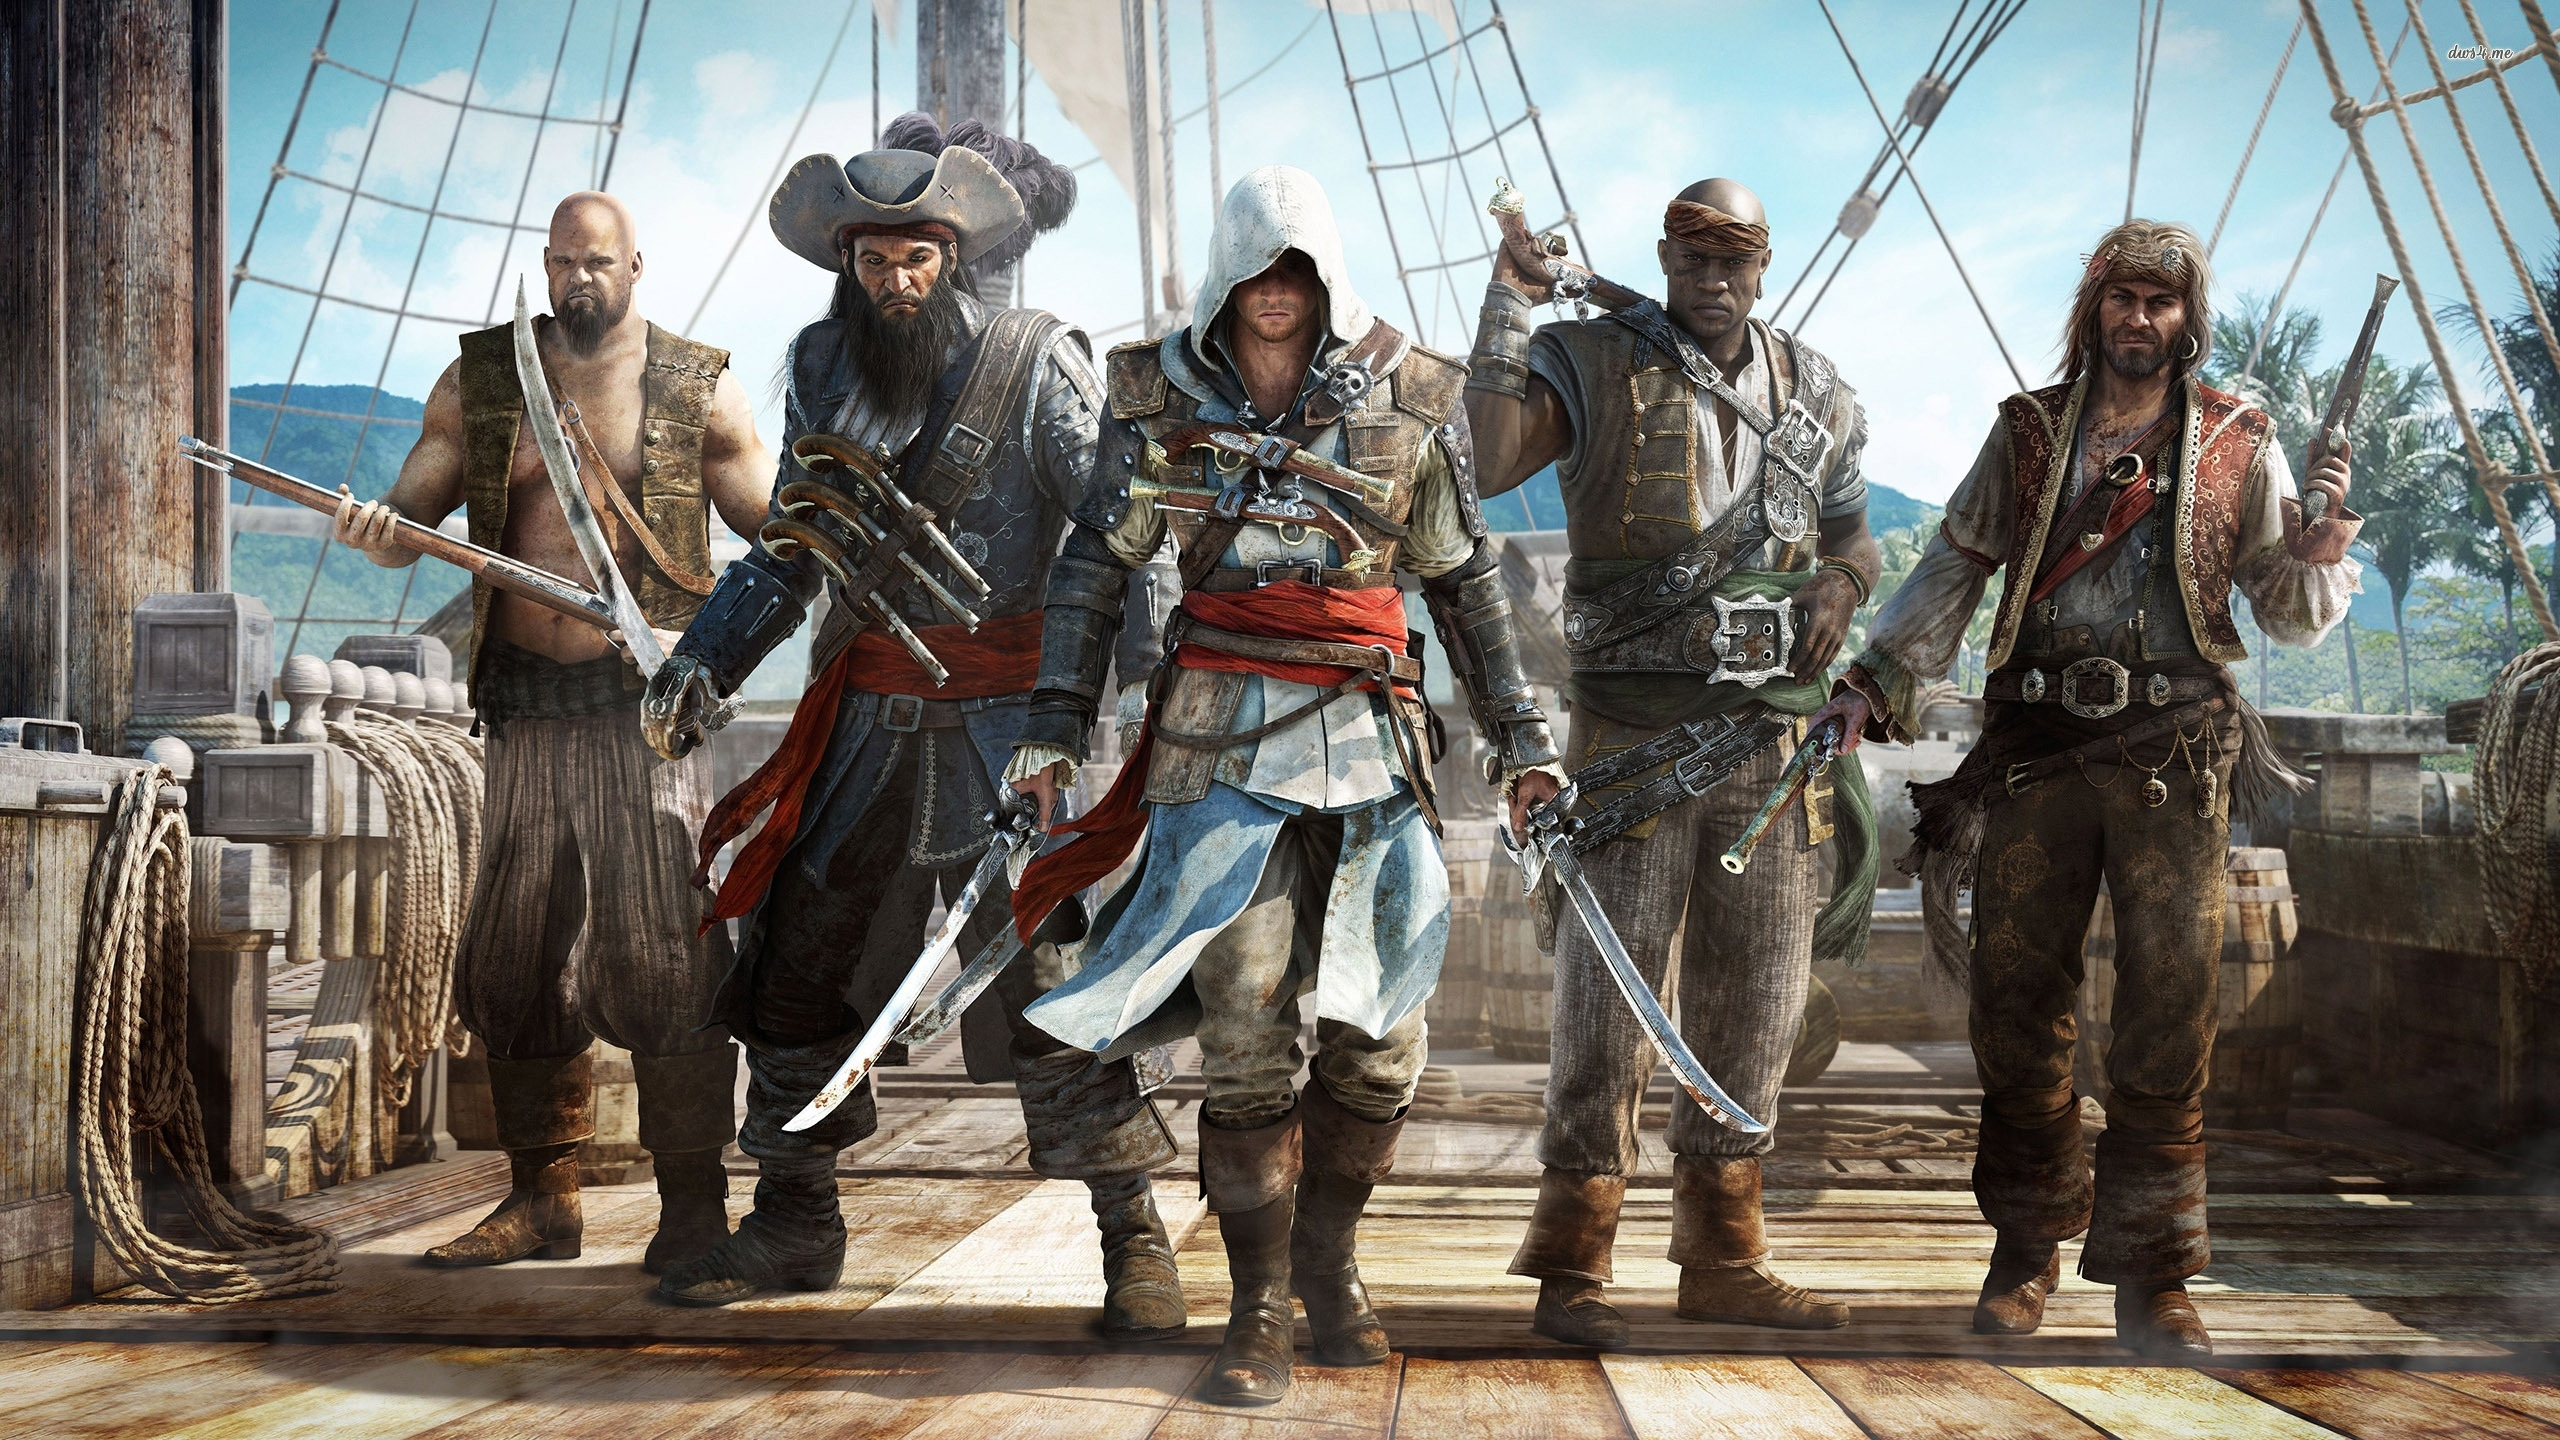 assassins creed blackflag full hd wallpaper and background image